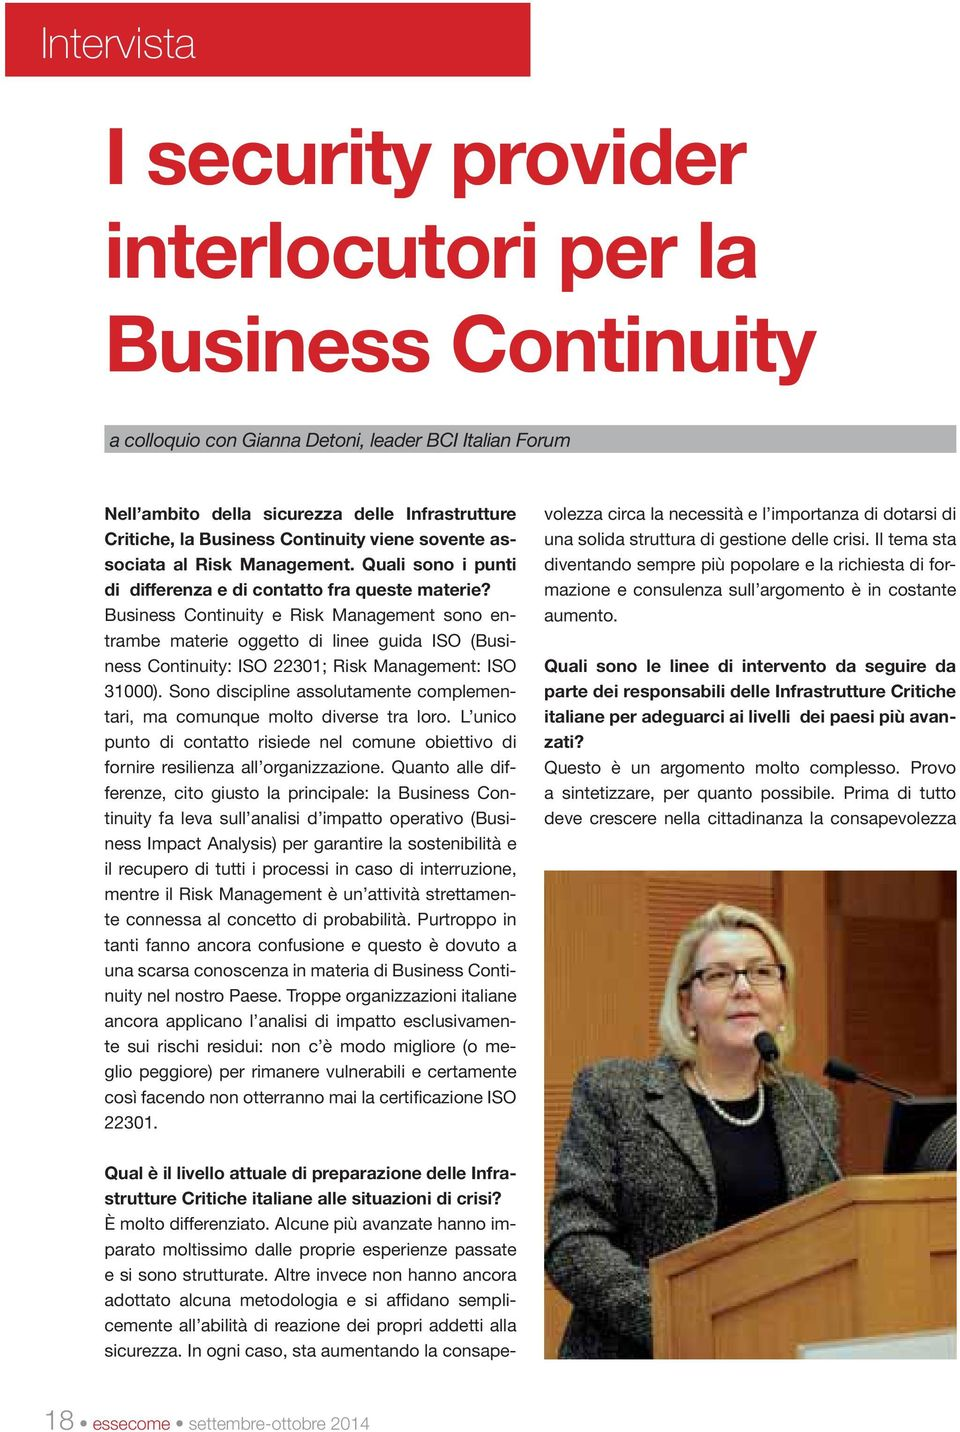 Business Continuity e Risk Management sono entrambe materie oggetto di linee guida ISO (Business Continuity: ISO 22301; Risk Management: ISO 31000).